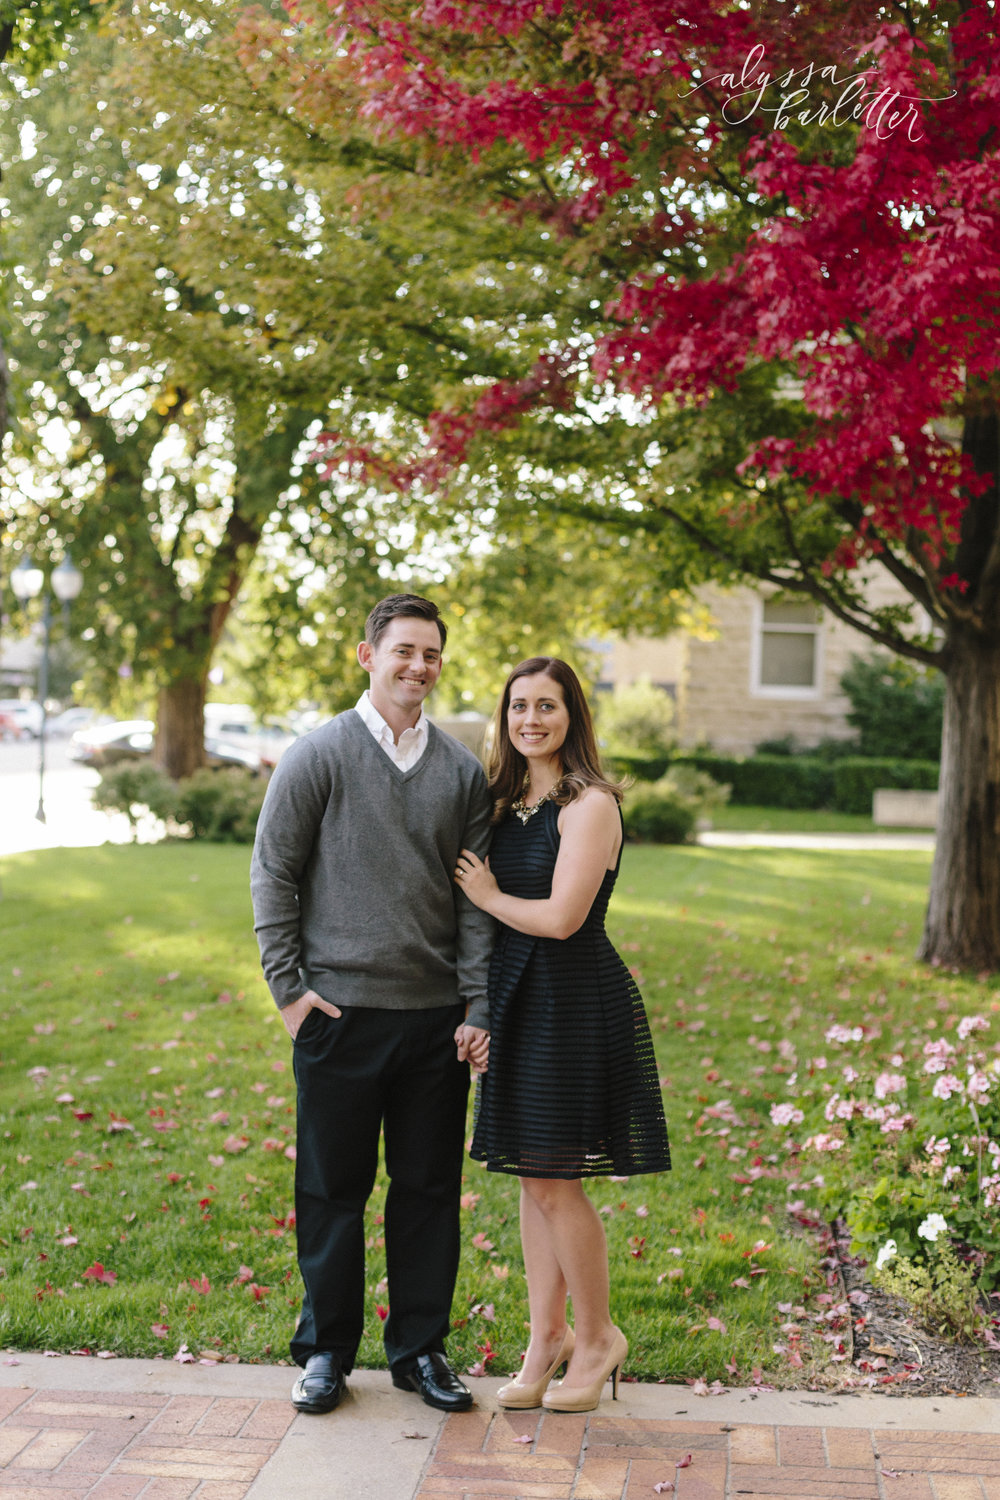 alyssa barletter photography manhattan kansas engagement photos kstate gardens taylor and kirk-1-10.jpg